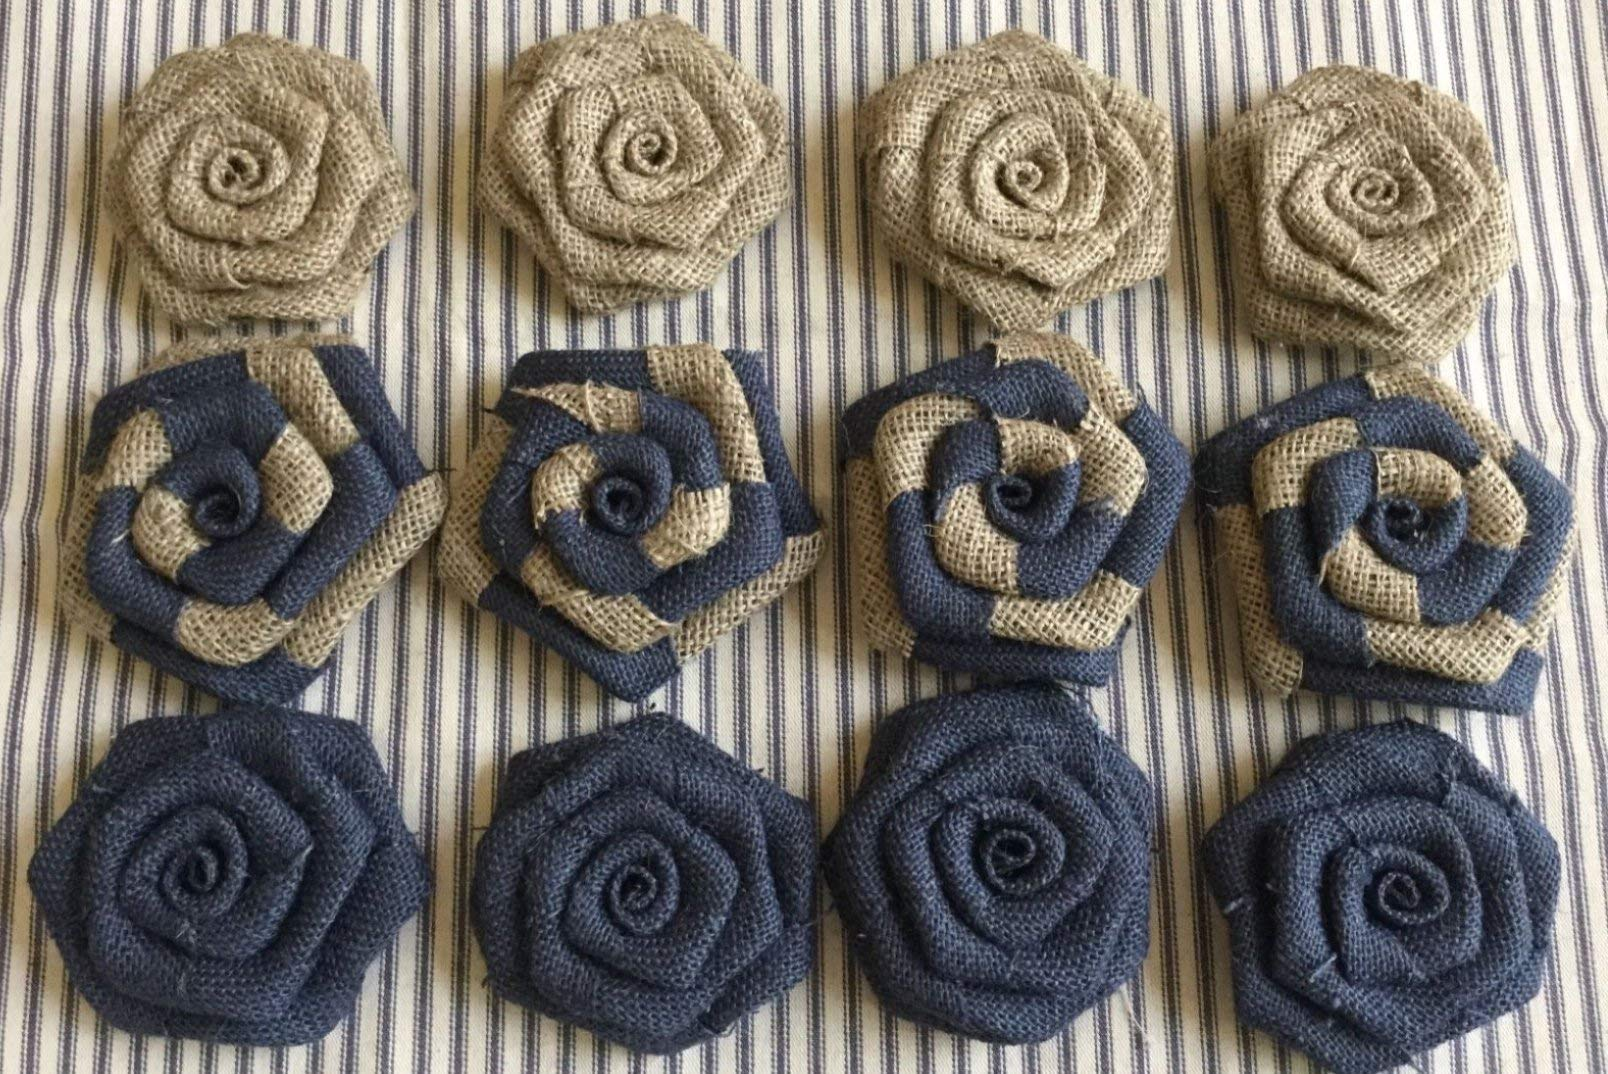 Set-of-12-Burlap-Flowers-Navy-and-Natural-Rustic-Wedding-Cake-Topper-Baby-Boy-Shower-Party-Reception-Table